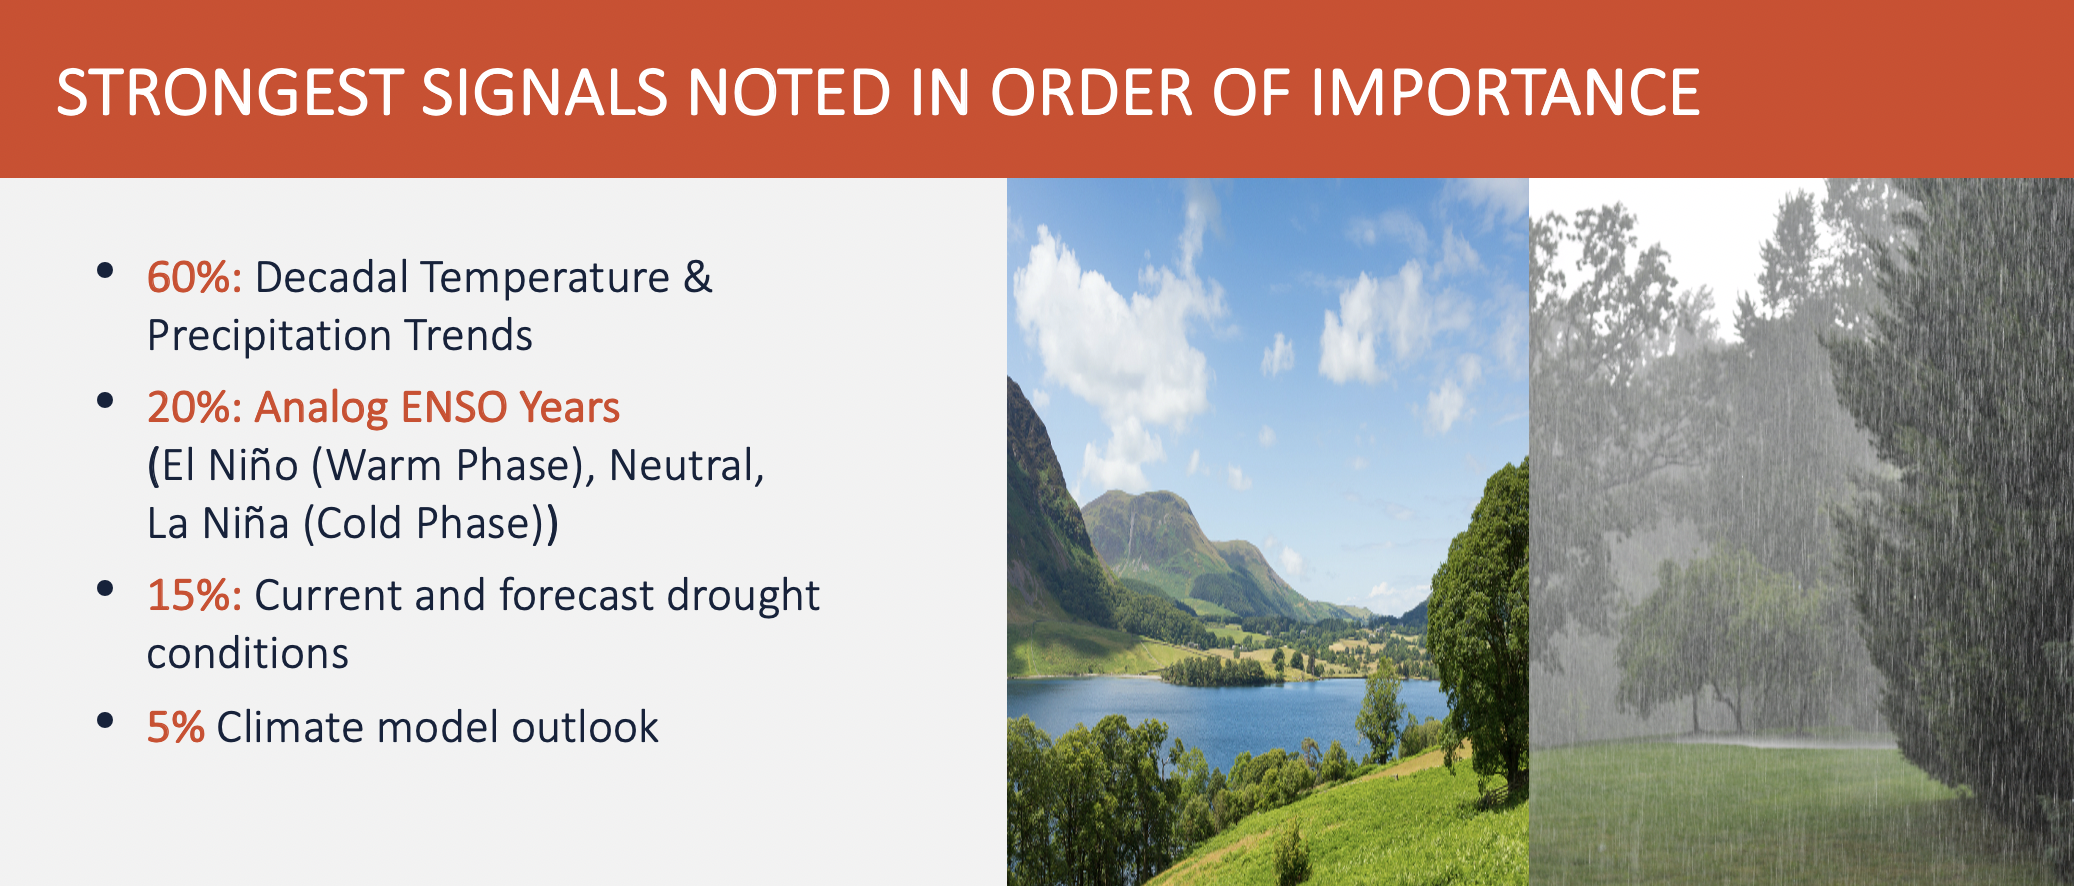 STRONGEST SIGNALS NOTED IN ORDER OF IMPORTANCE for the summer outlook webinar 2020